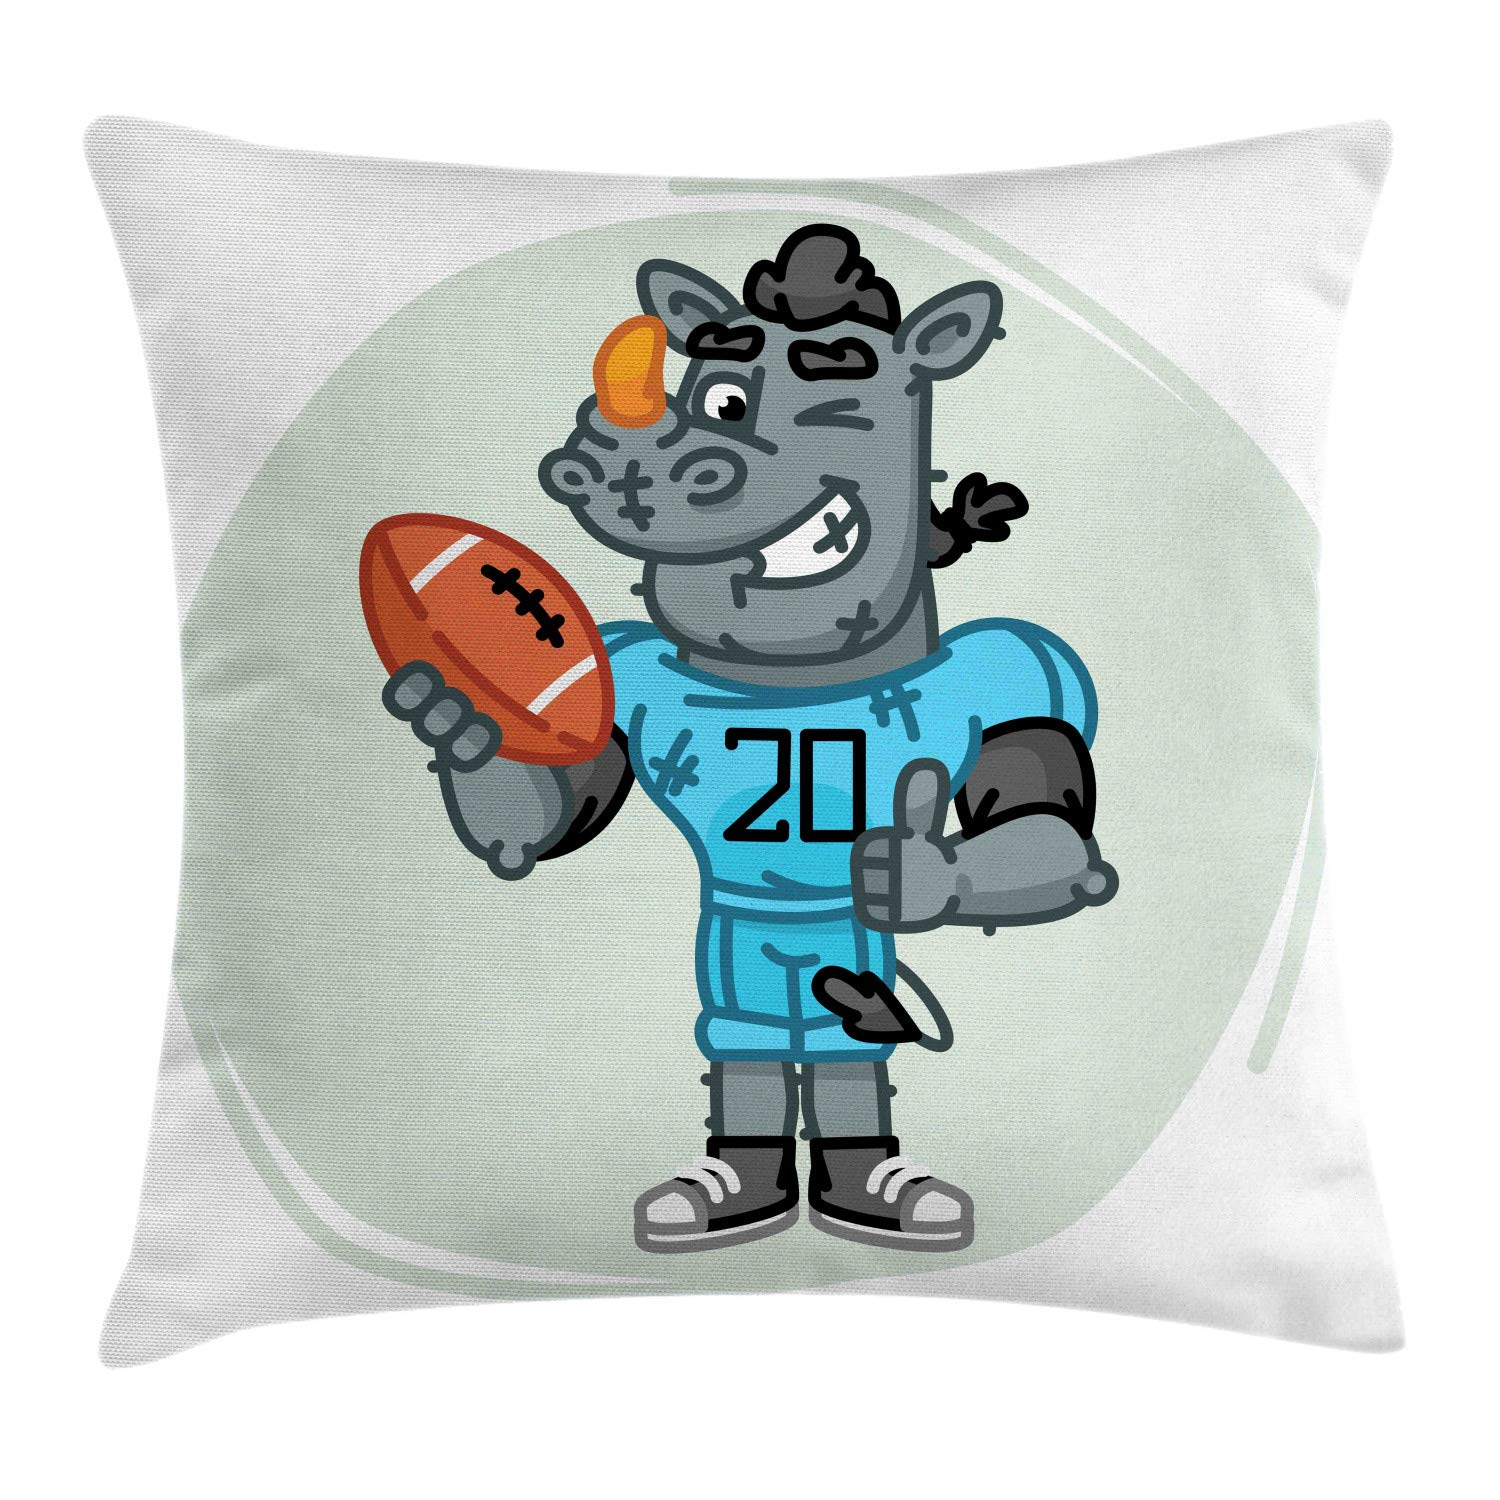 Ambesonne Rhino Throw Pillow Cushion Cover, Football Mascot Animal with Jersey and Ball Cartoon Style Composition Doodle Nursery, Decorative Square Accent Pillow Case, 36'' X 36'', Multicolor